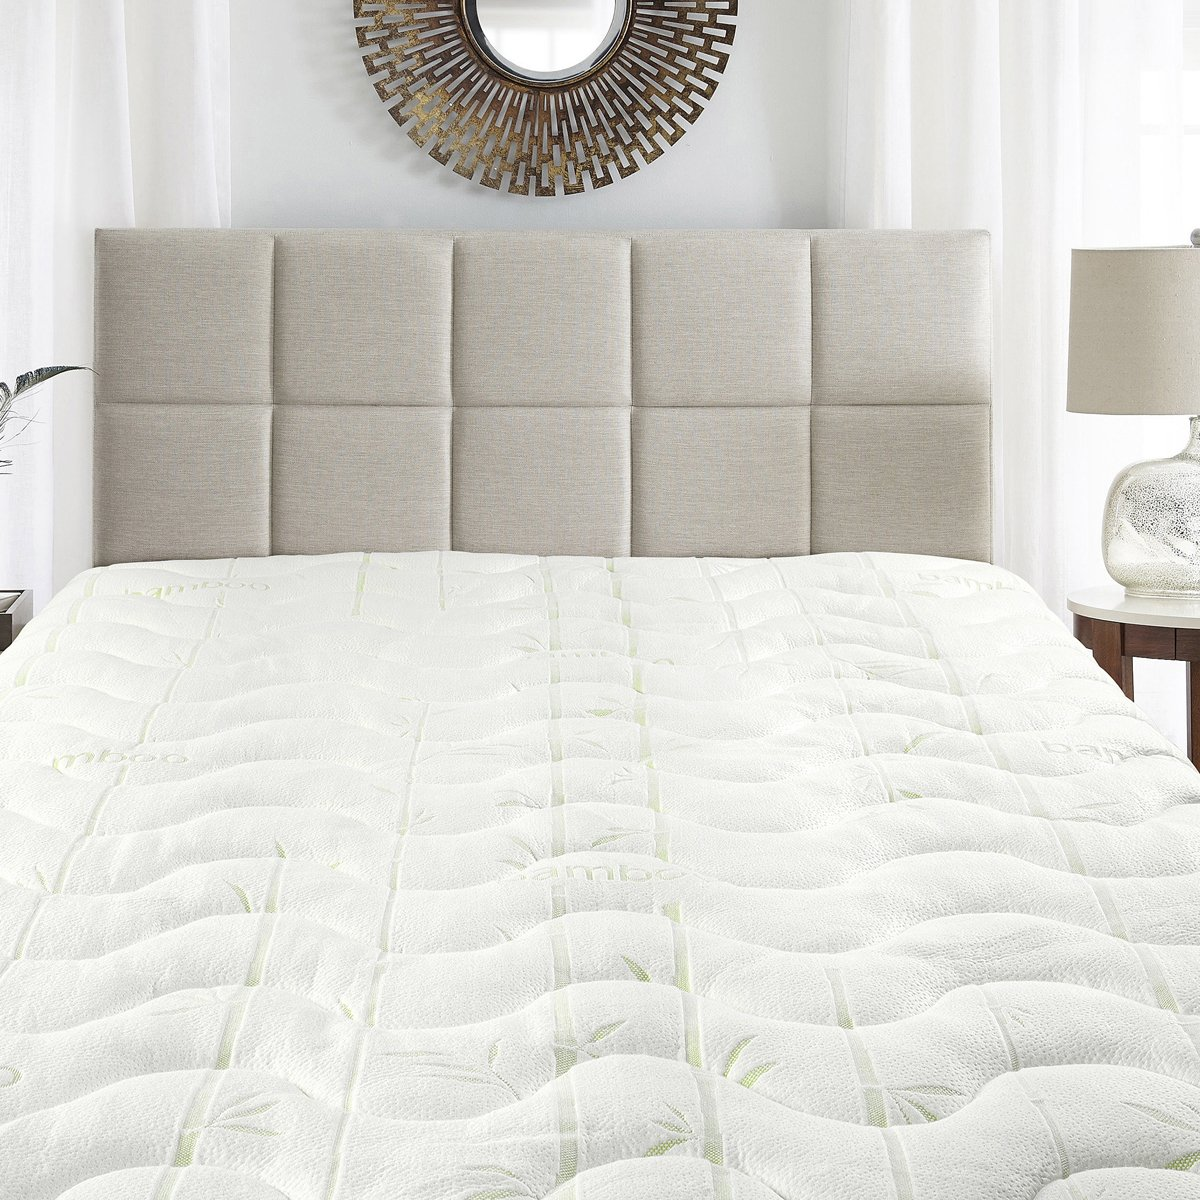 Waterproof Bamboo Jacqurad Blend Fitted Topper, King Mattress Pad by Royal Hotel